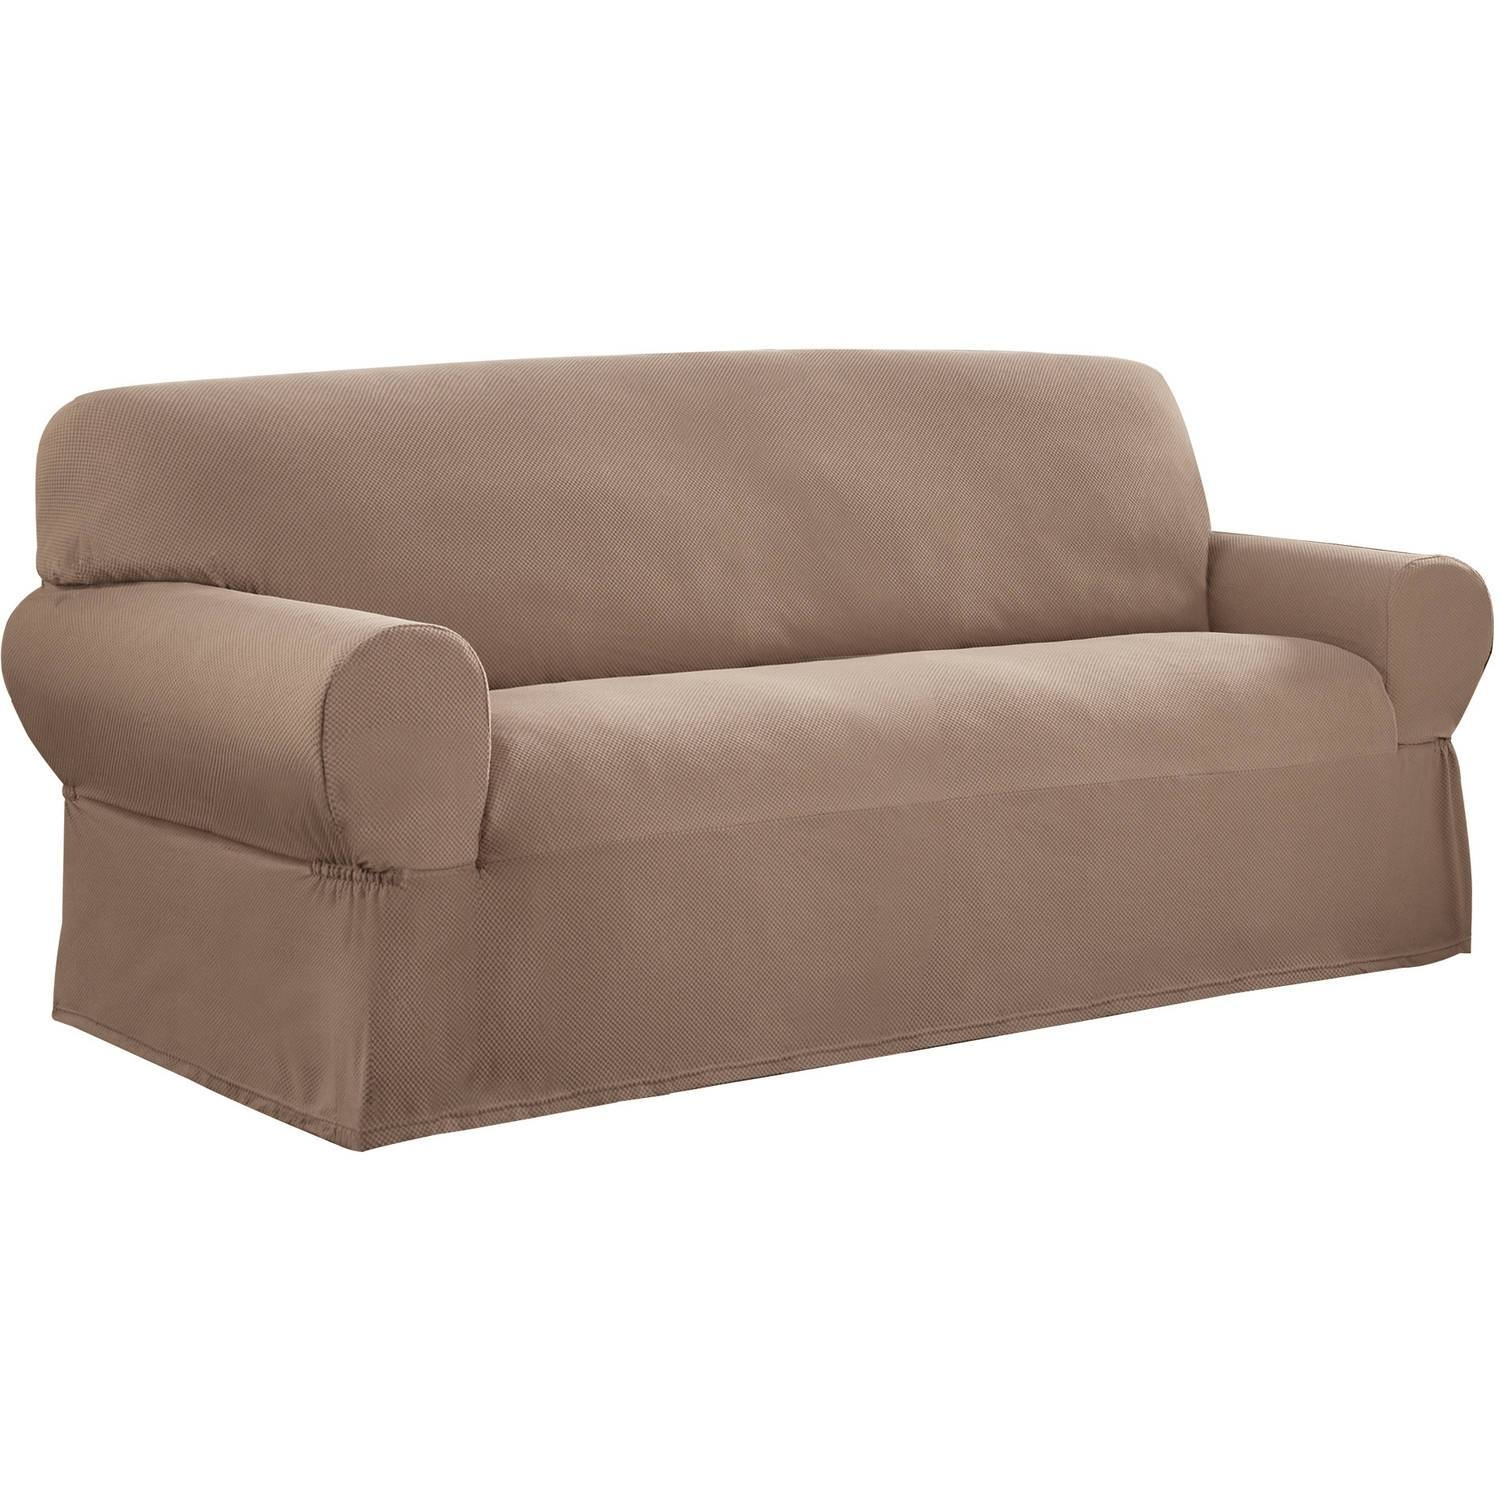 Mainstays 1-Piece Stretch Fabric Sofa Slipcover - Walmart in Suede Slipcovers for Sofas (Image 6 of 15)